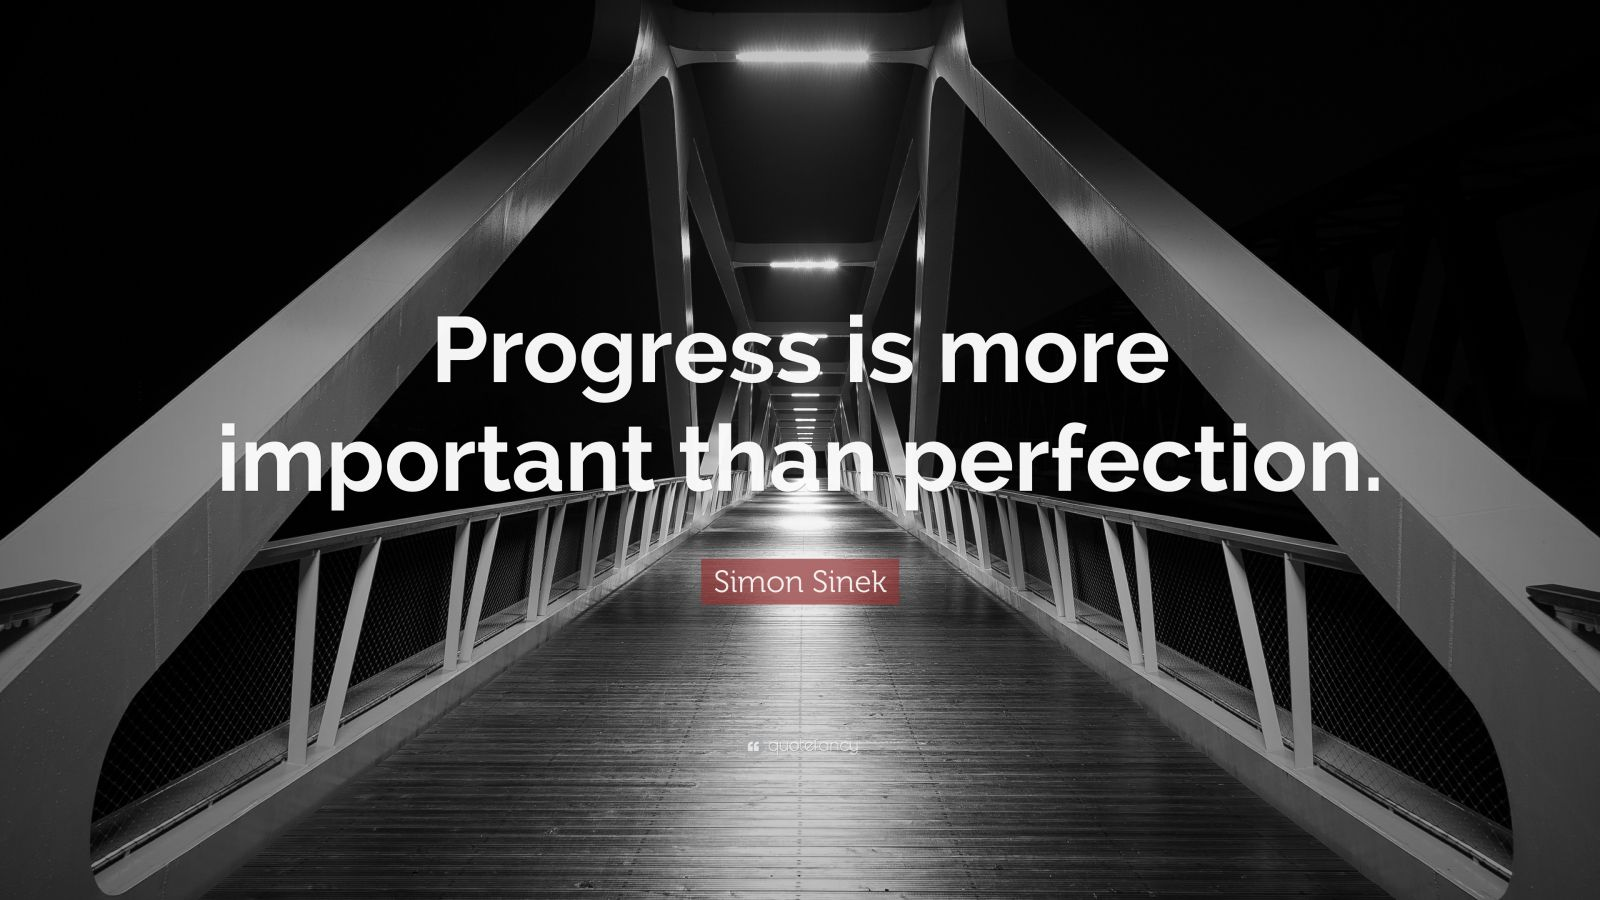 Persistence Motivational Quotes: Perfection Quotes (40 Wallpapers)